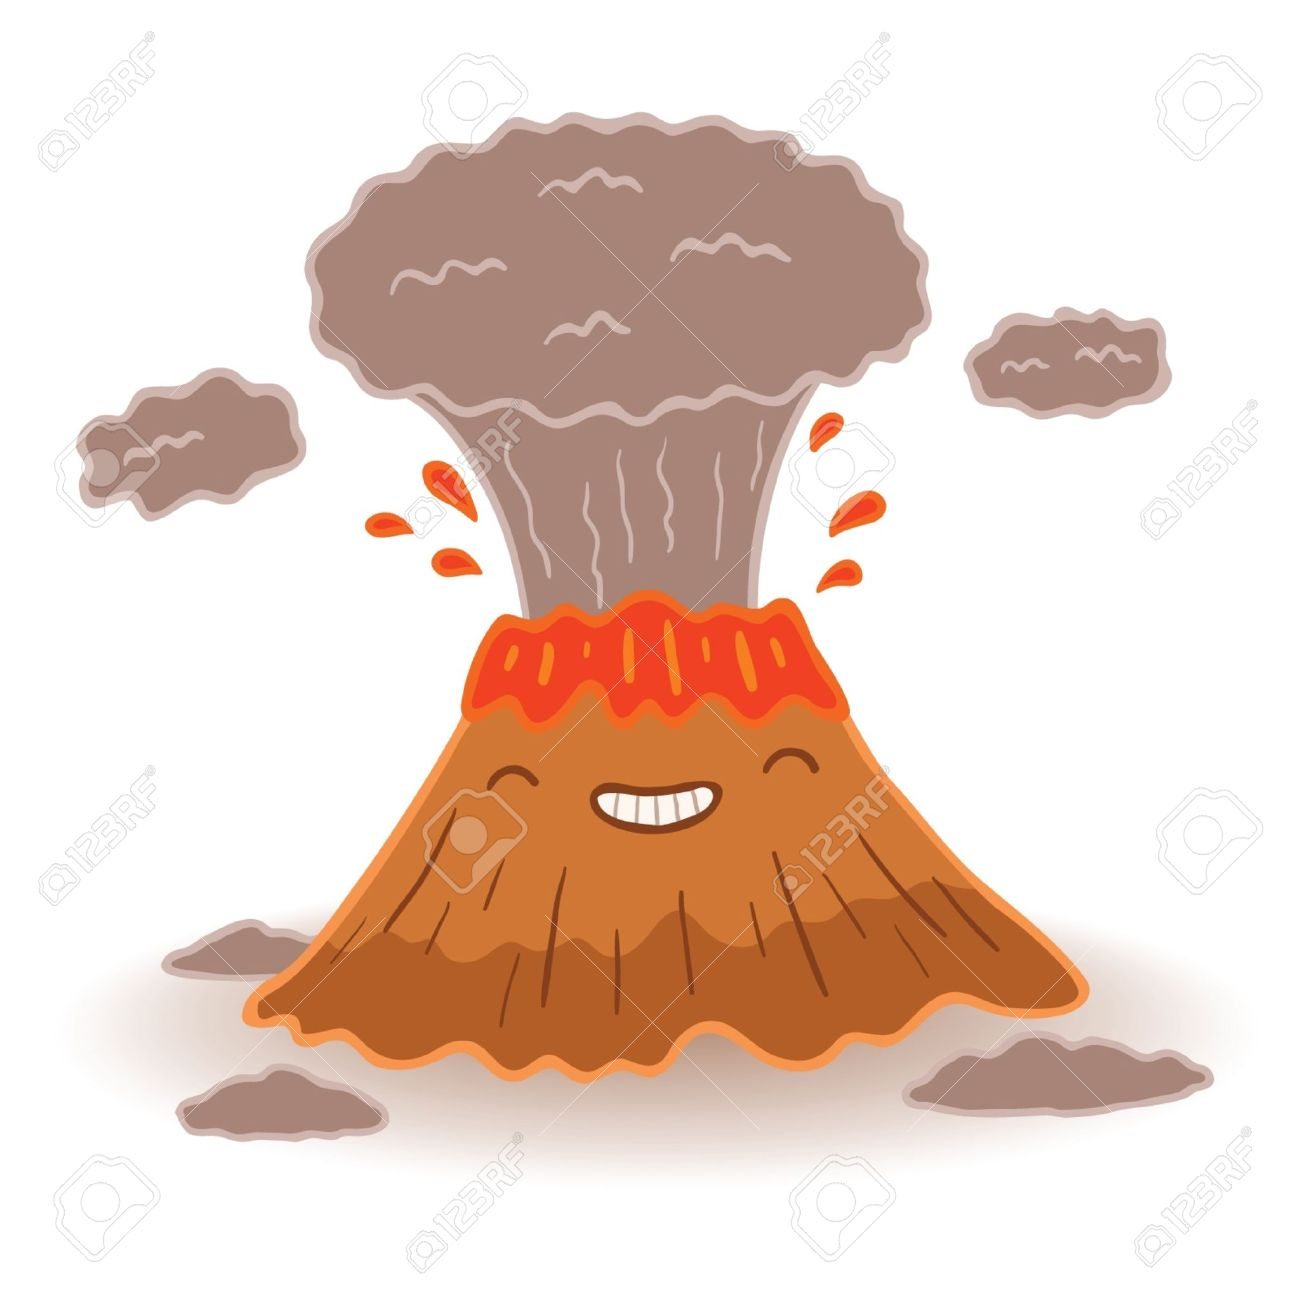 796 Ash Cloud Stock Vector Illustration And Royalty Free Ash Cloud.